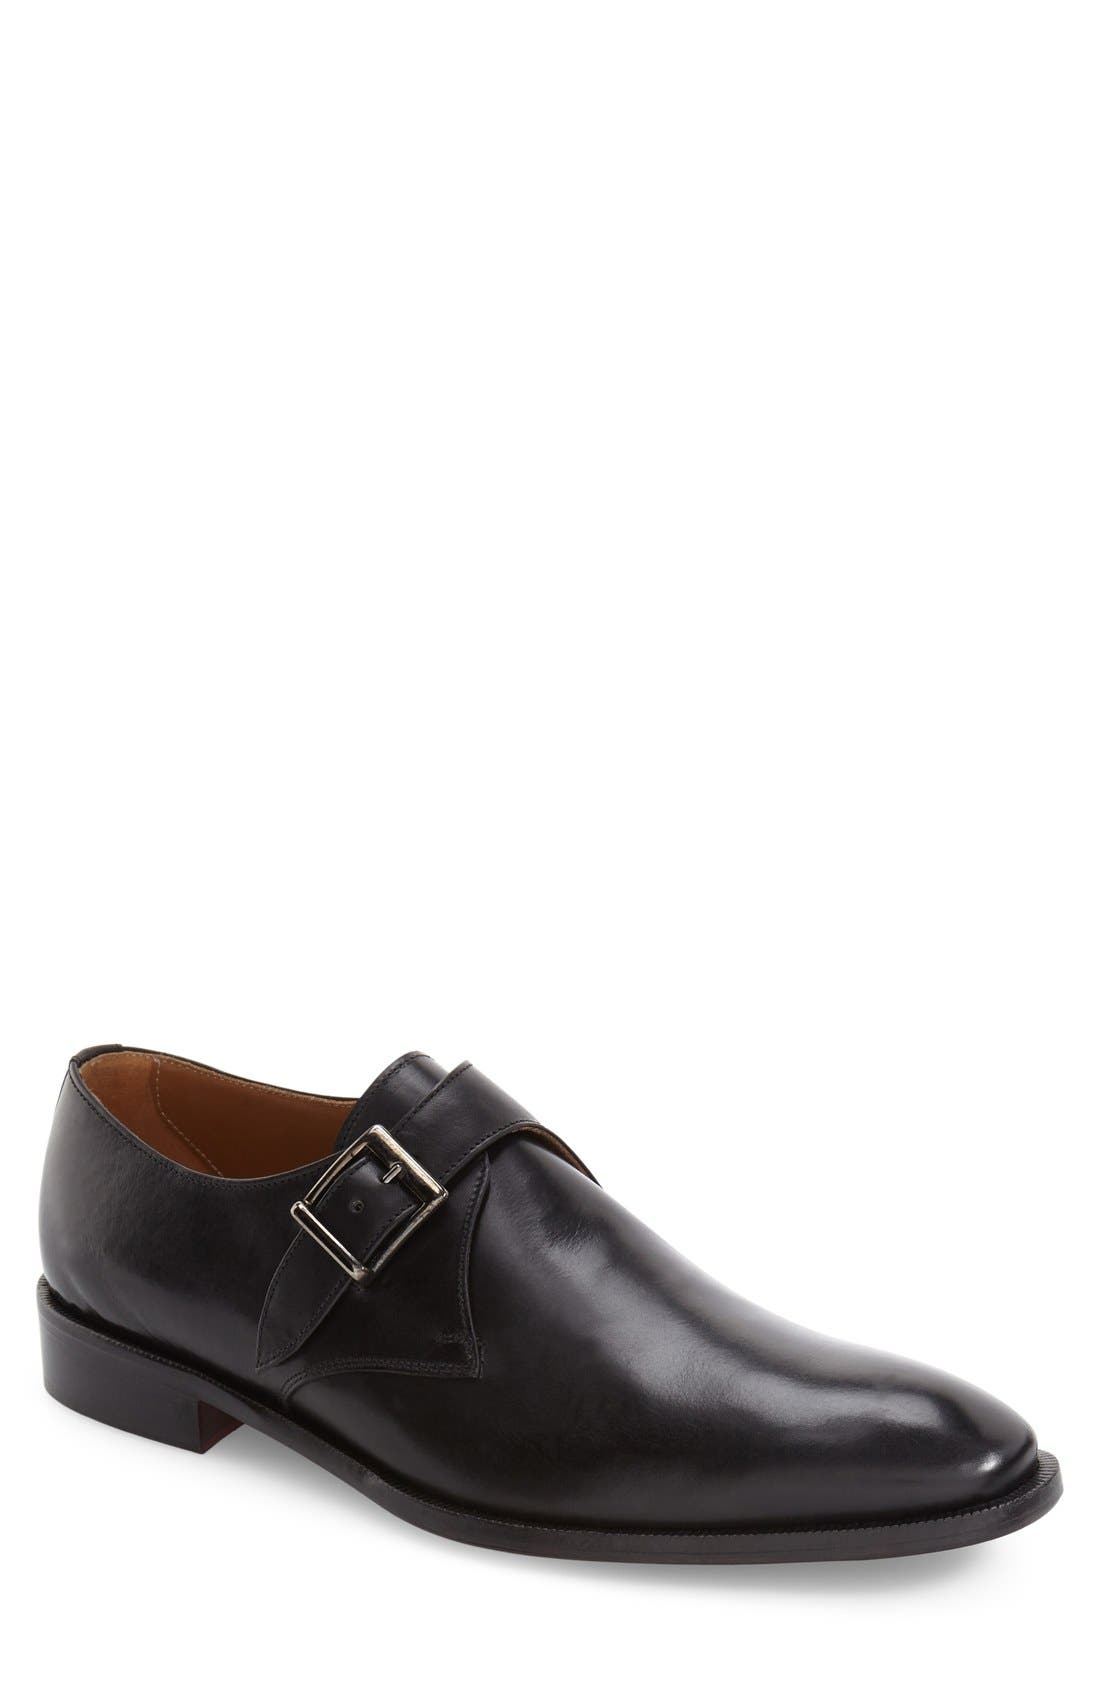 Suit Coat Monk Strap Shoe,                         Main,                         color, 001